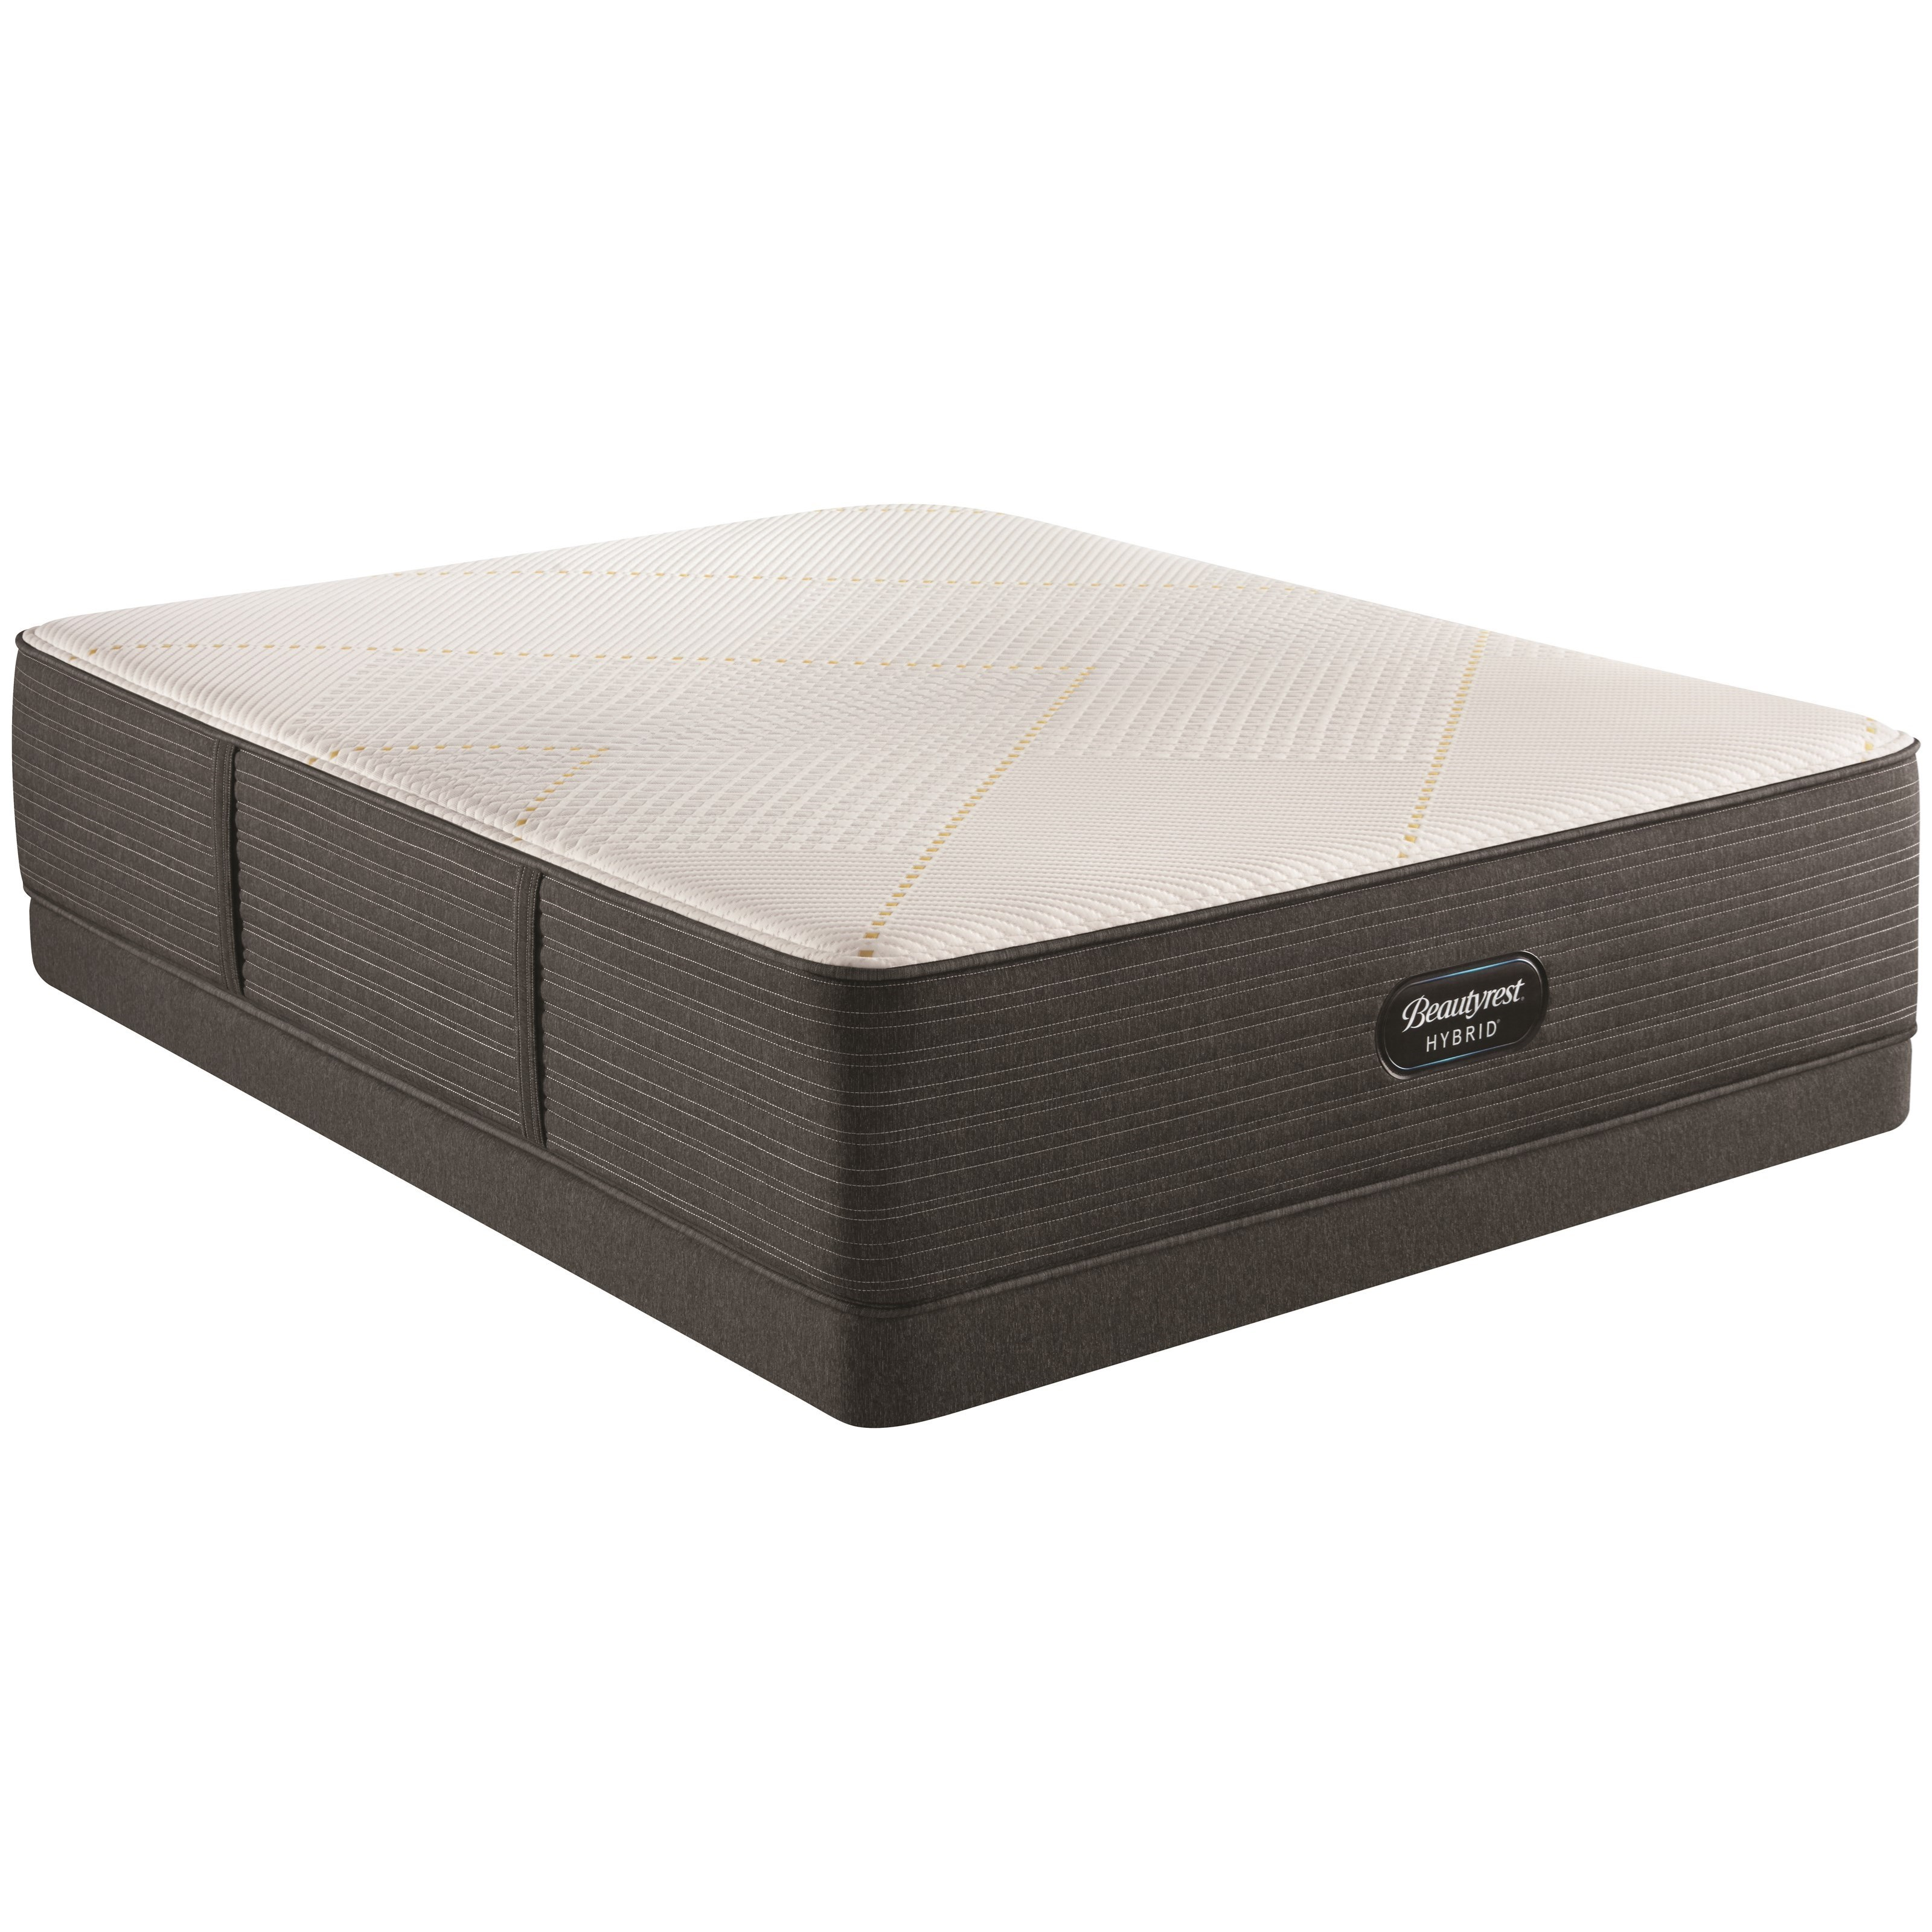 "BRX3000-IM Medium Hybrid Twin XL 15 1/2"" Hybrid Low Pro Set by Beautyrest at SlumberWorld"